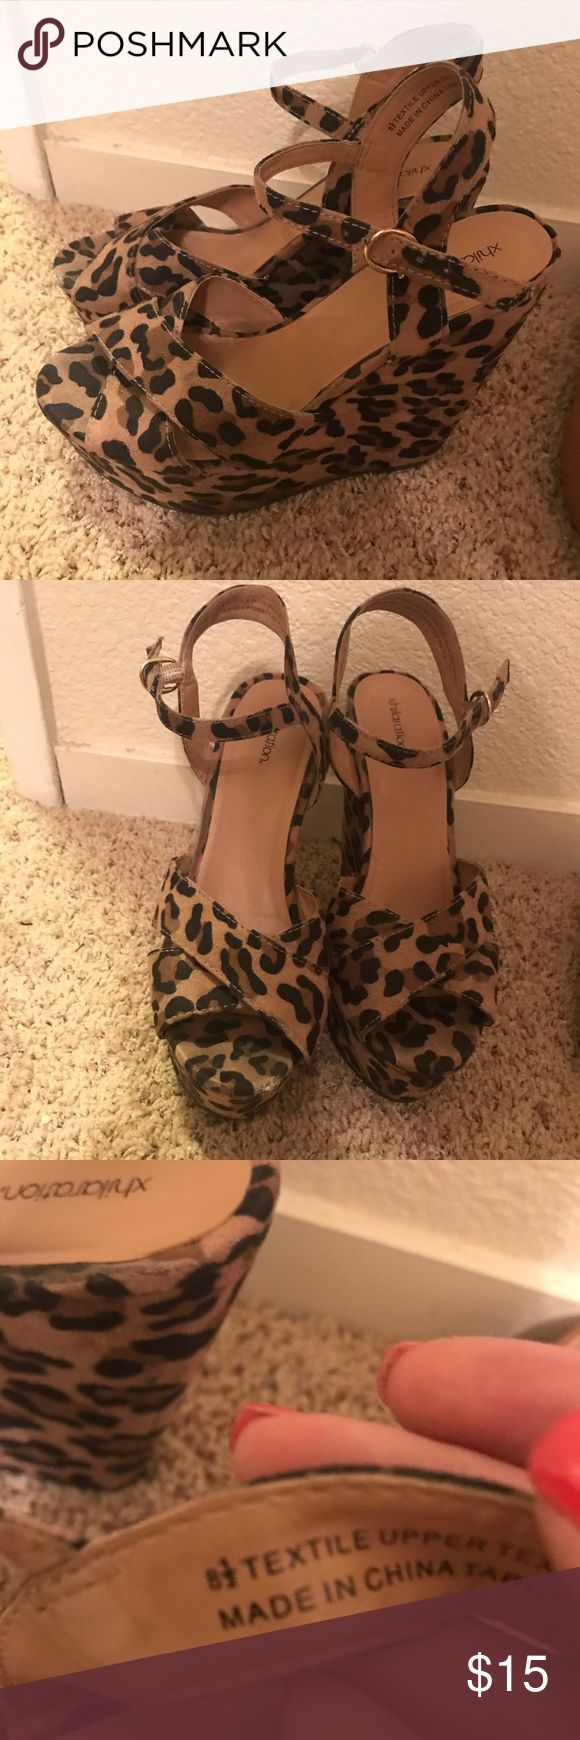 Fun sassy leopard wedges! Fun sassy leopard wedges great for brunch or summer nights! Only worn once or twice! Size 8 1/2 Xhilaration Shoes Wedges